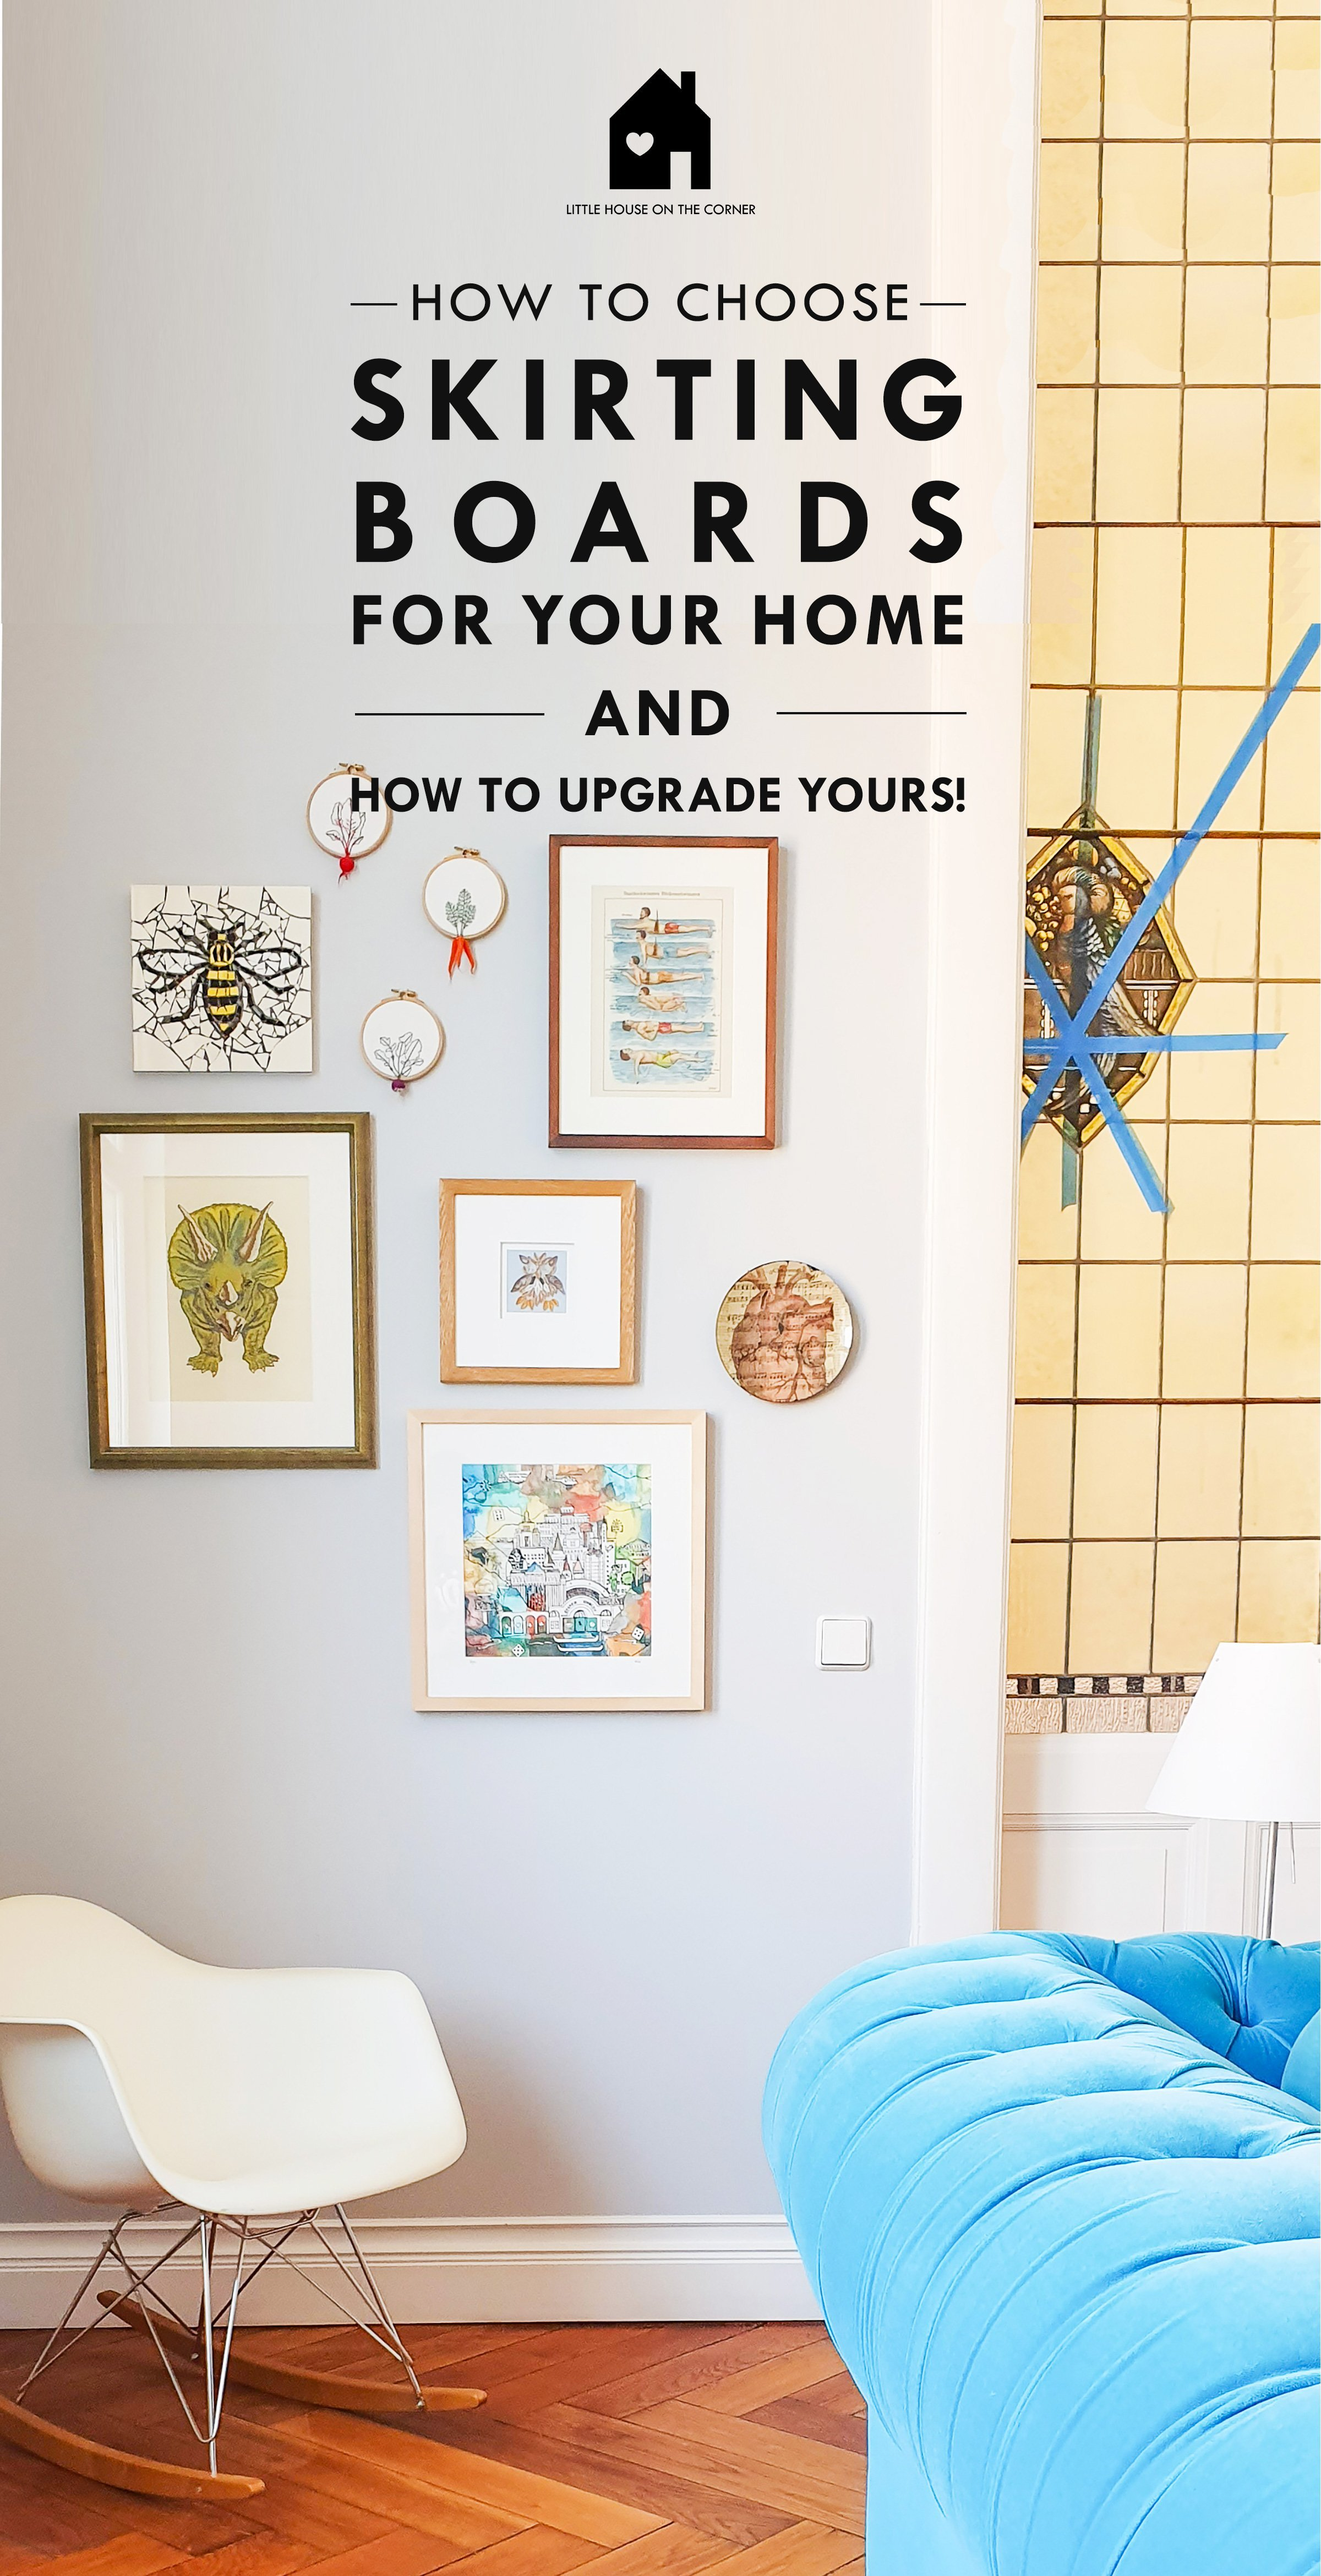 How To Choose The Right Skirting Boards For Your Home | Little House On The Corner